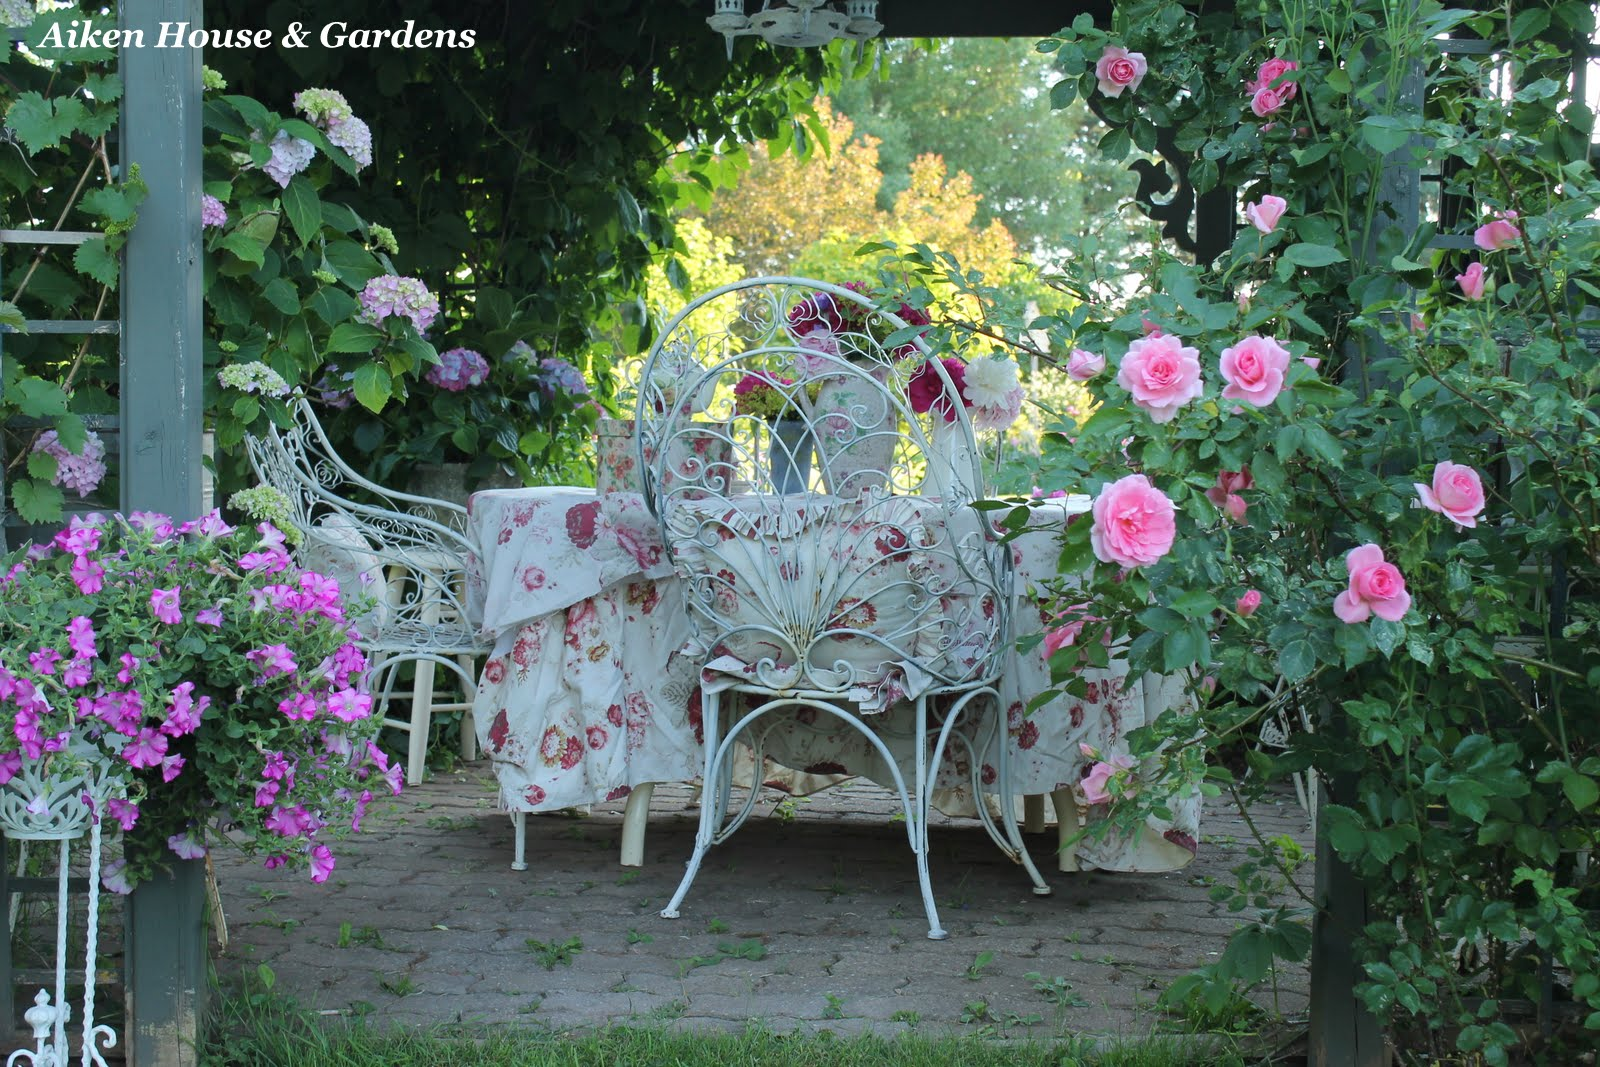 Aiken House & Gardens: Romantic Garden Style on Romantic Backyard Ideas id=27394